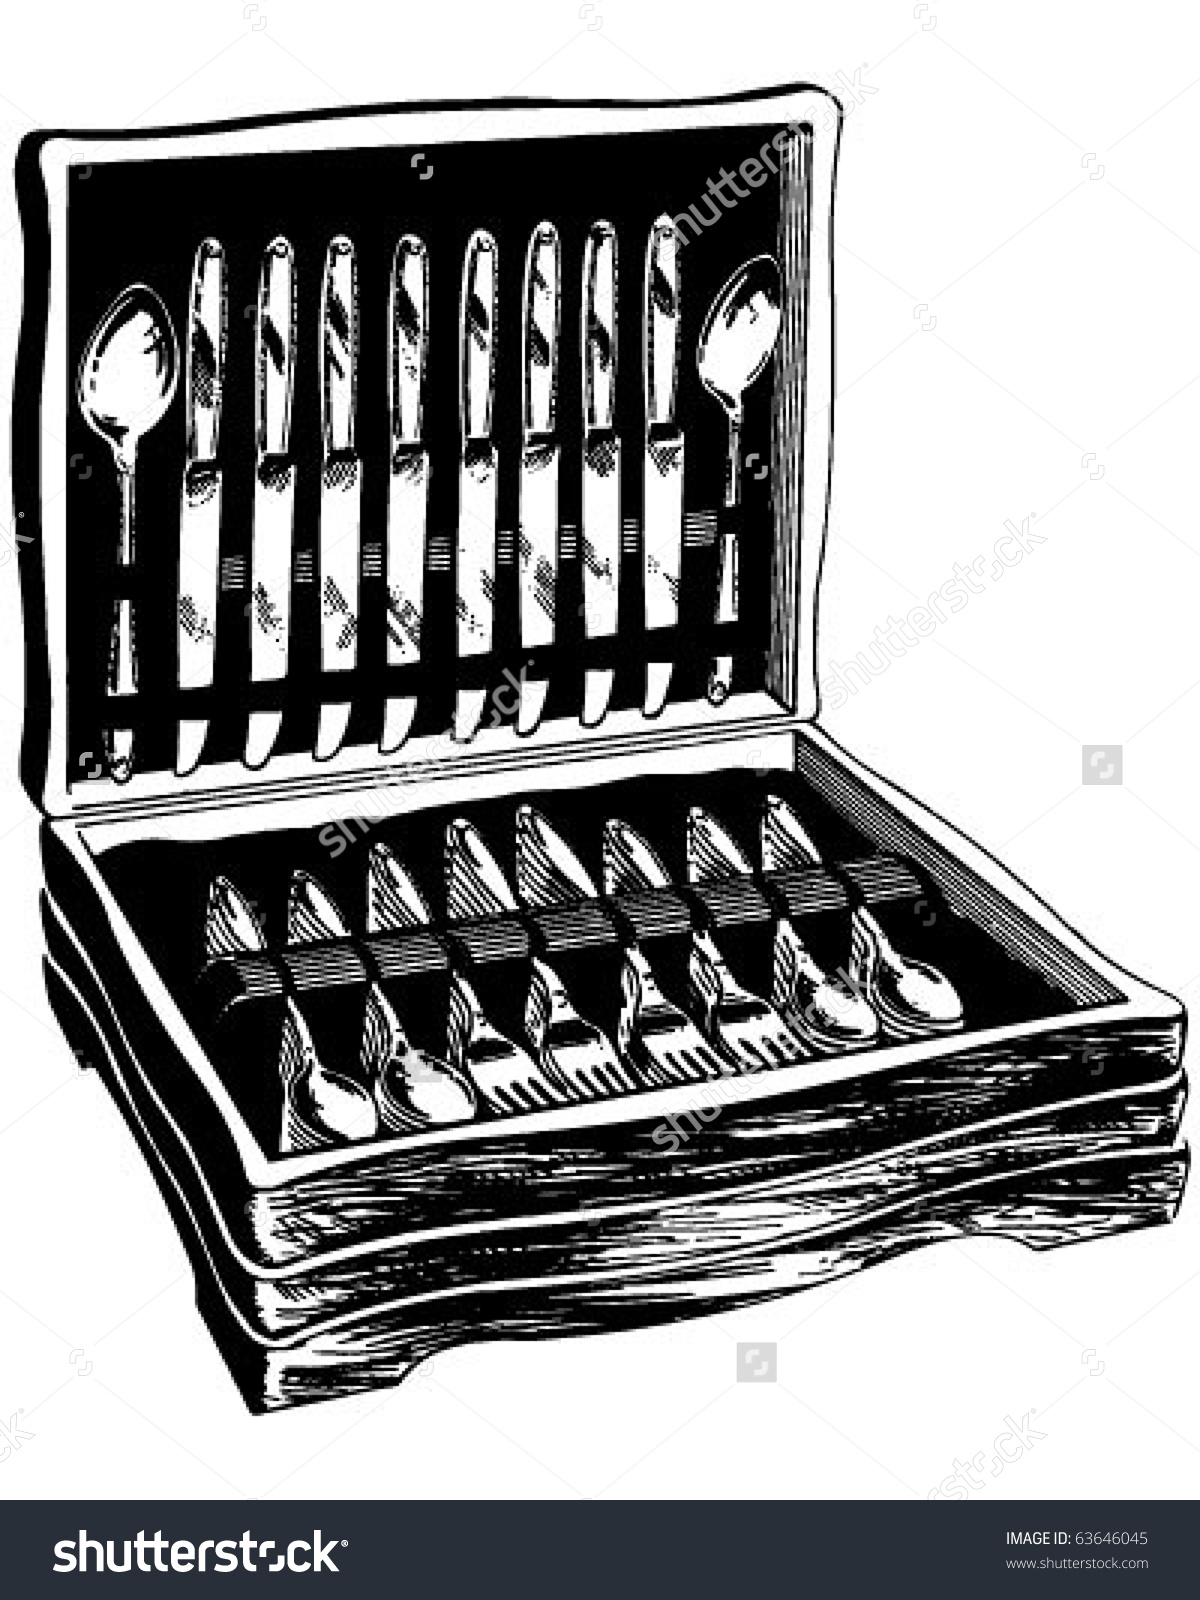 Flatware In Wooden Case.